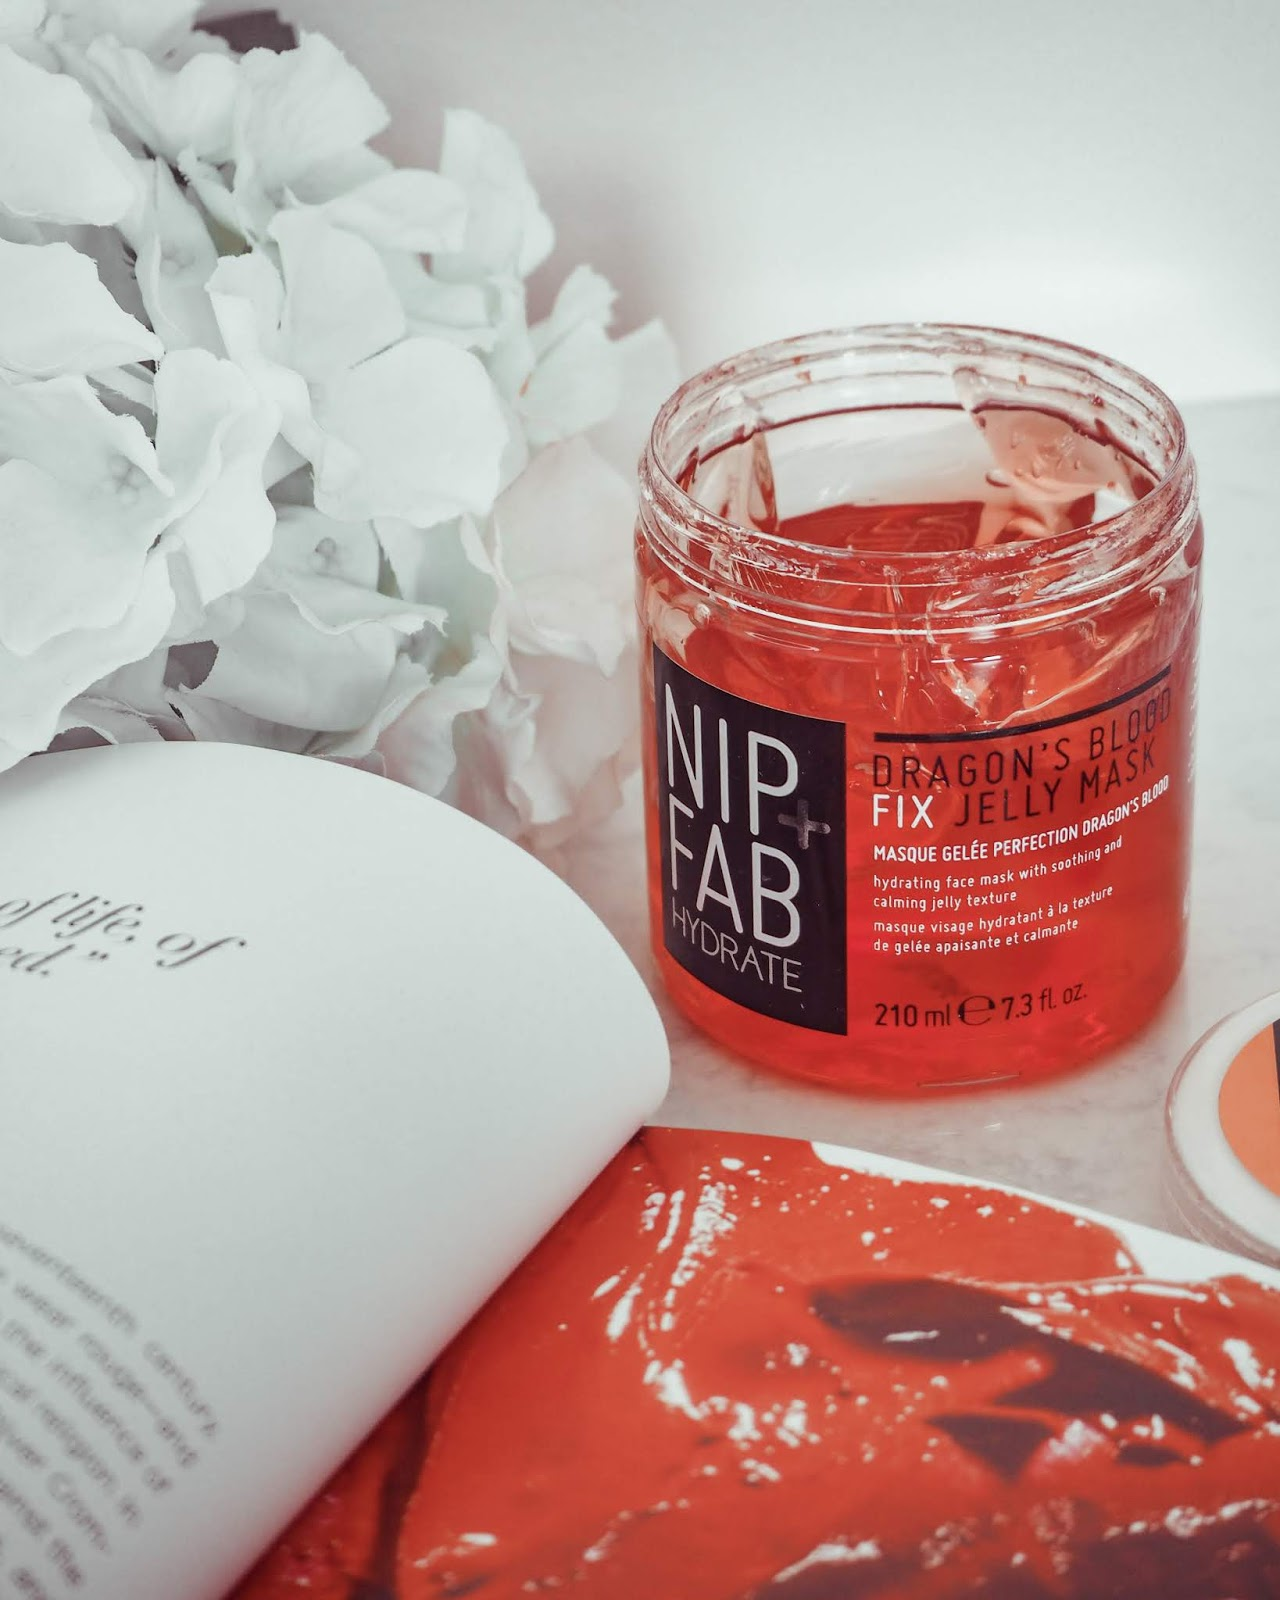 NIP+FAB Dragons Blood Fix Jelly Mask.